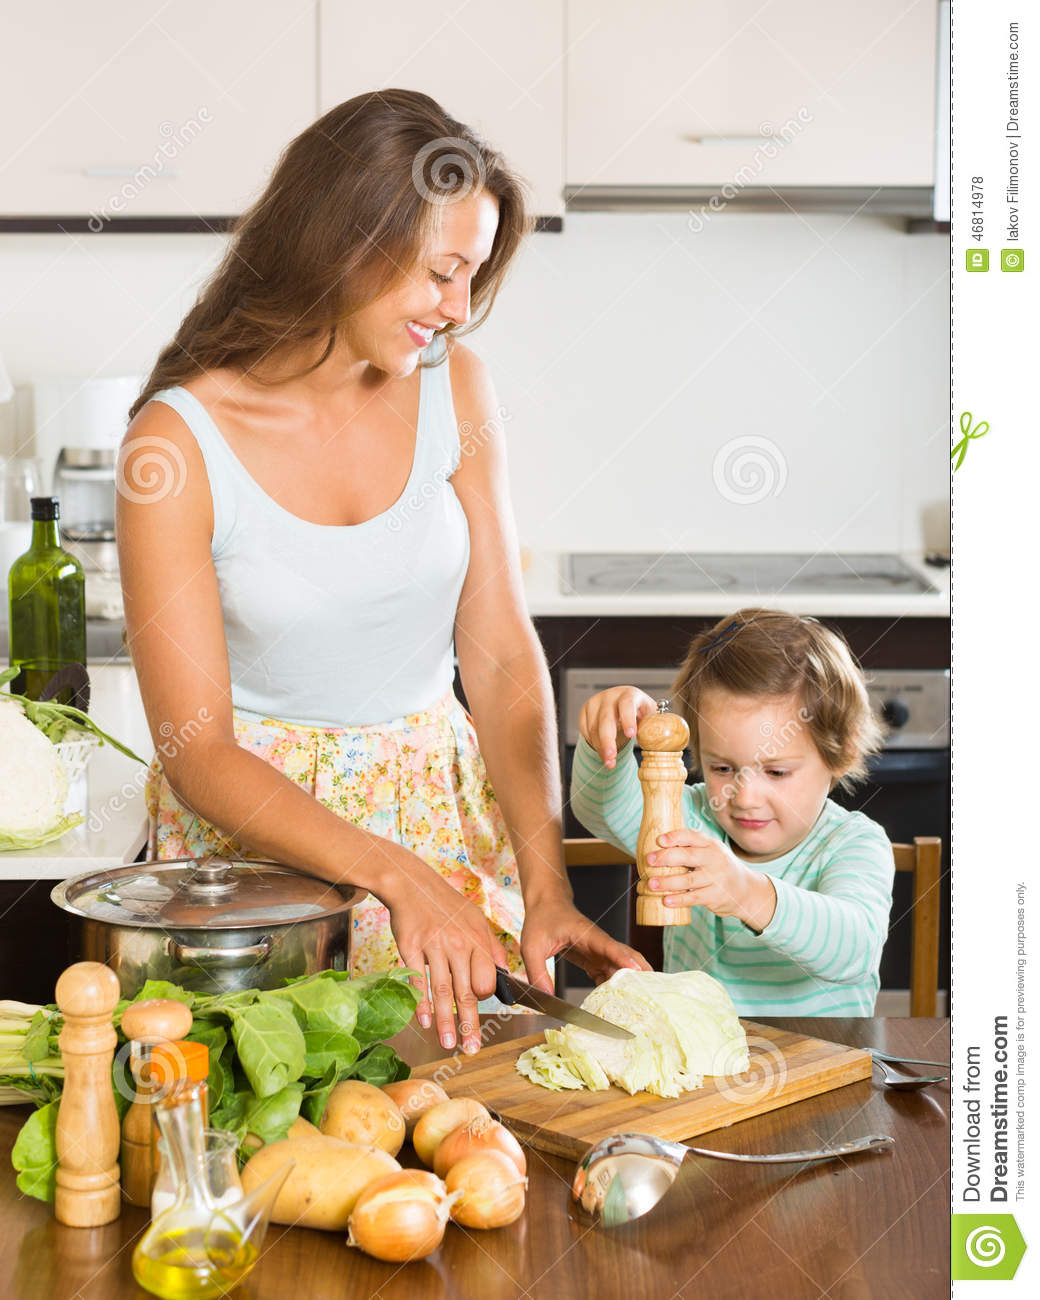 Women Kitchen: Woman With Baby Cooking At Kitchen Stock Photo